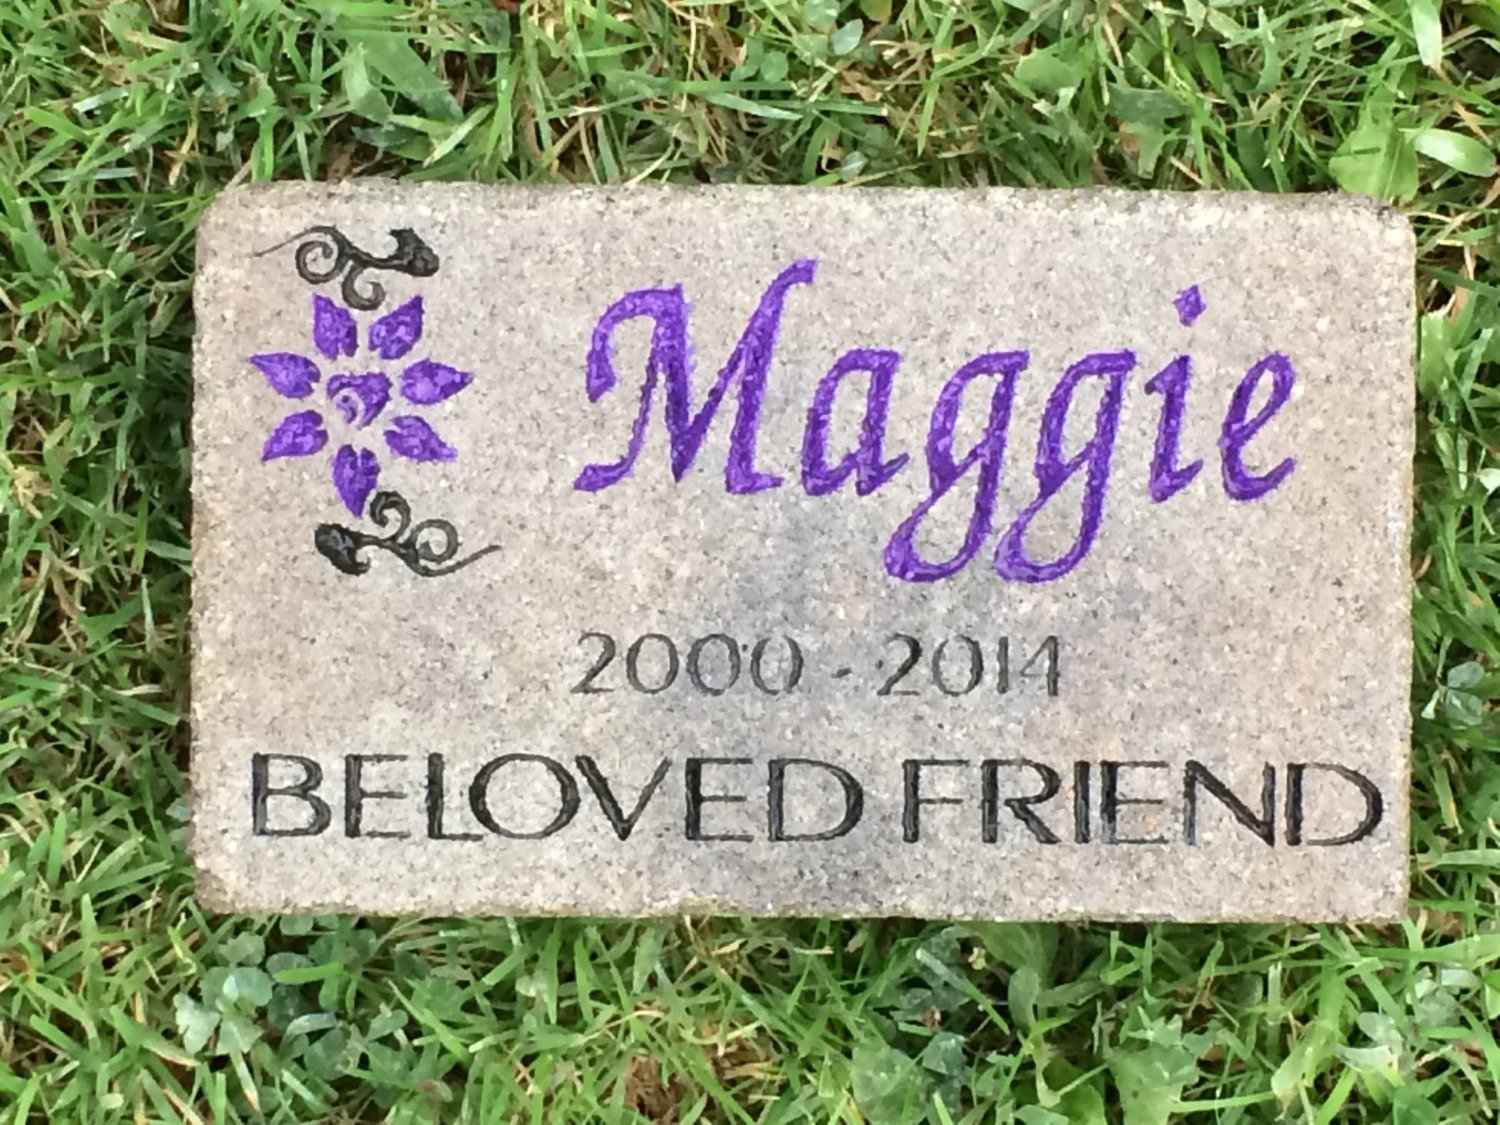 personalized pet memorial marker 7x4 cambridge pavingstone with